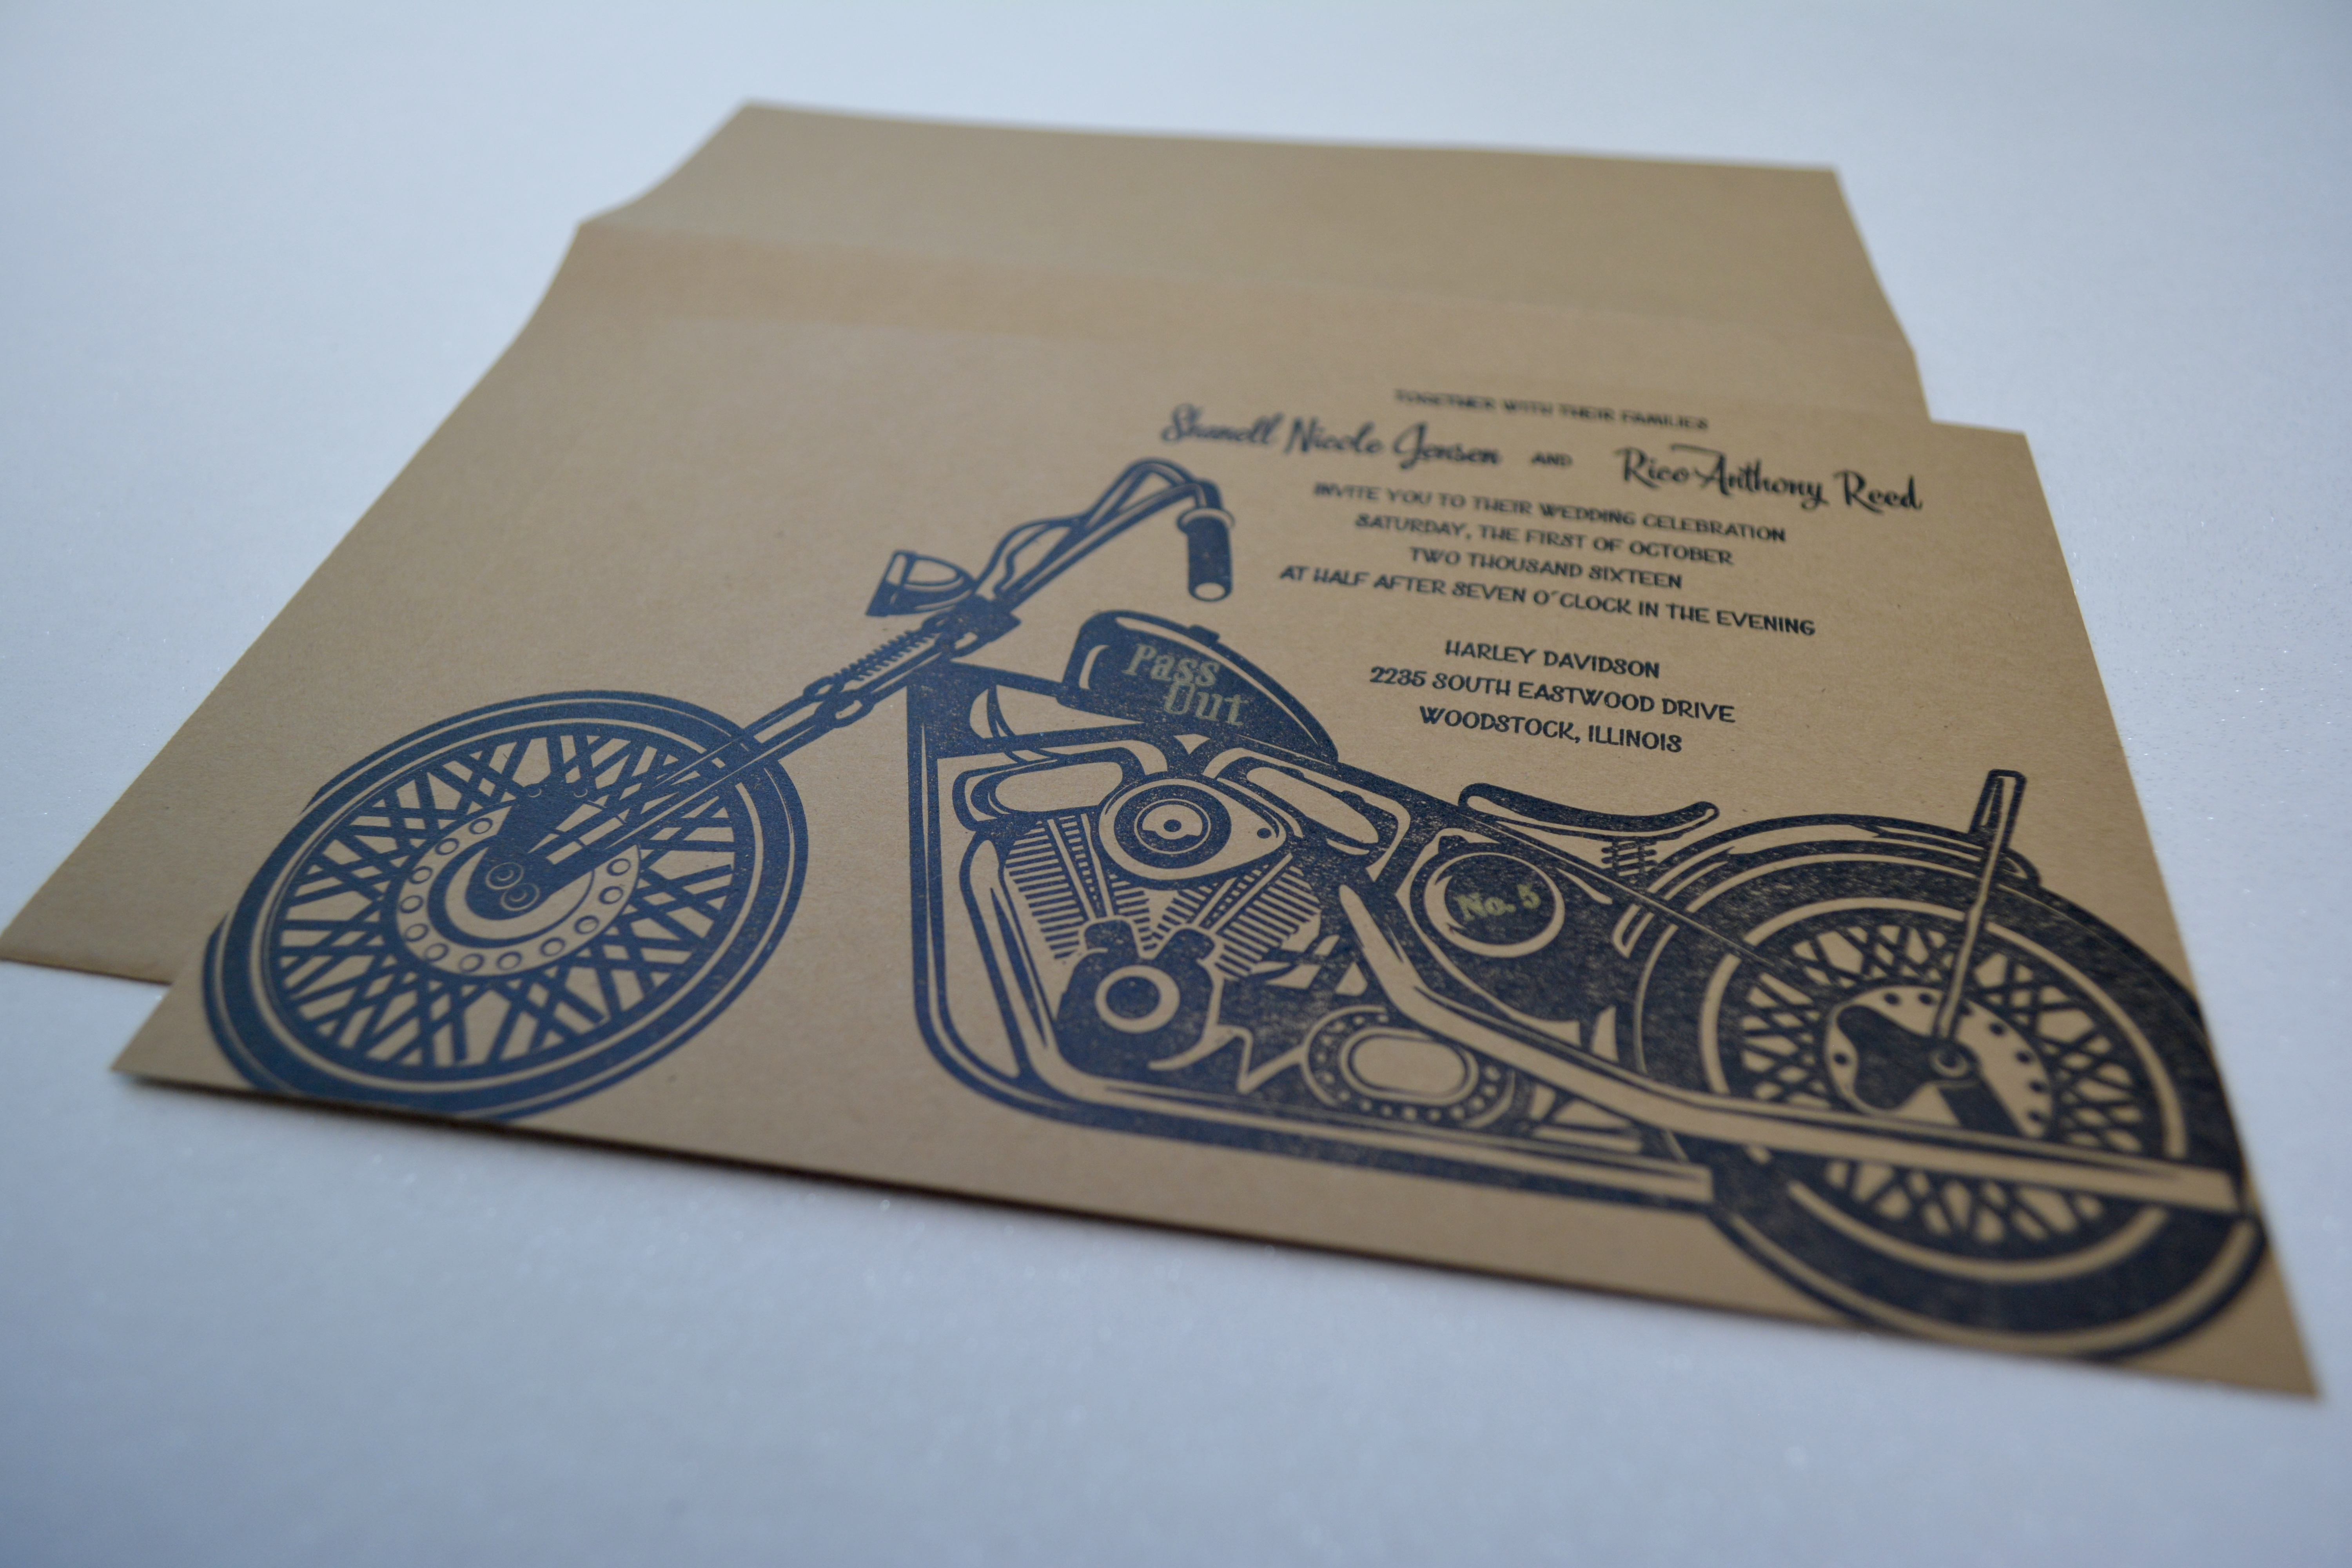 Motorcyle-wedding-invitation-by-luck